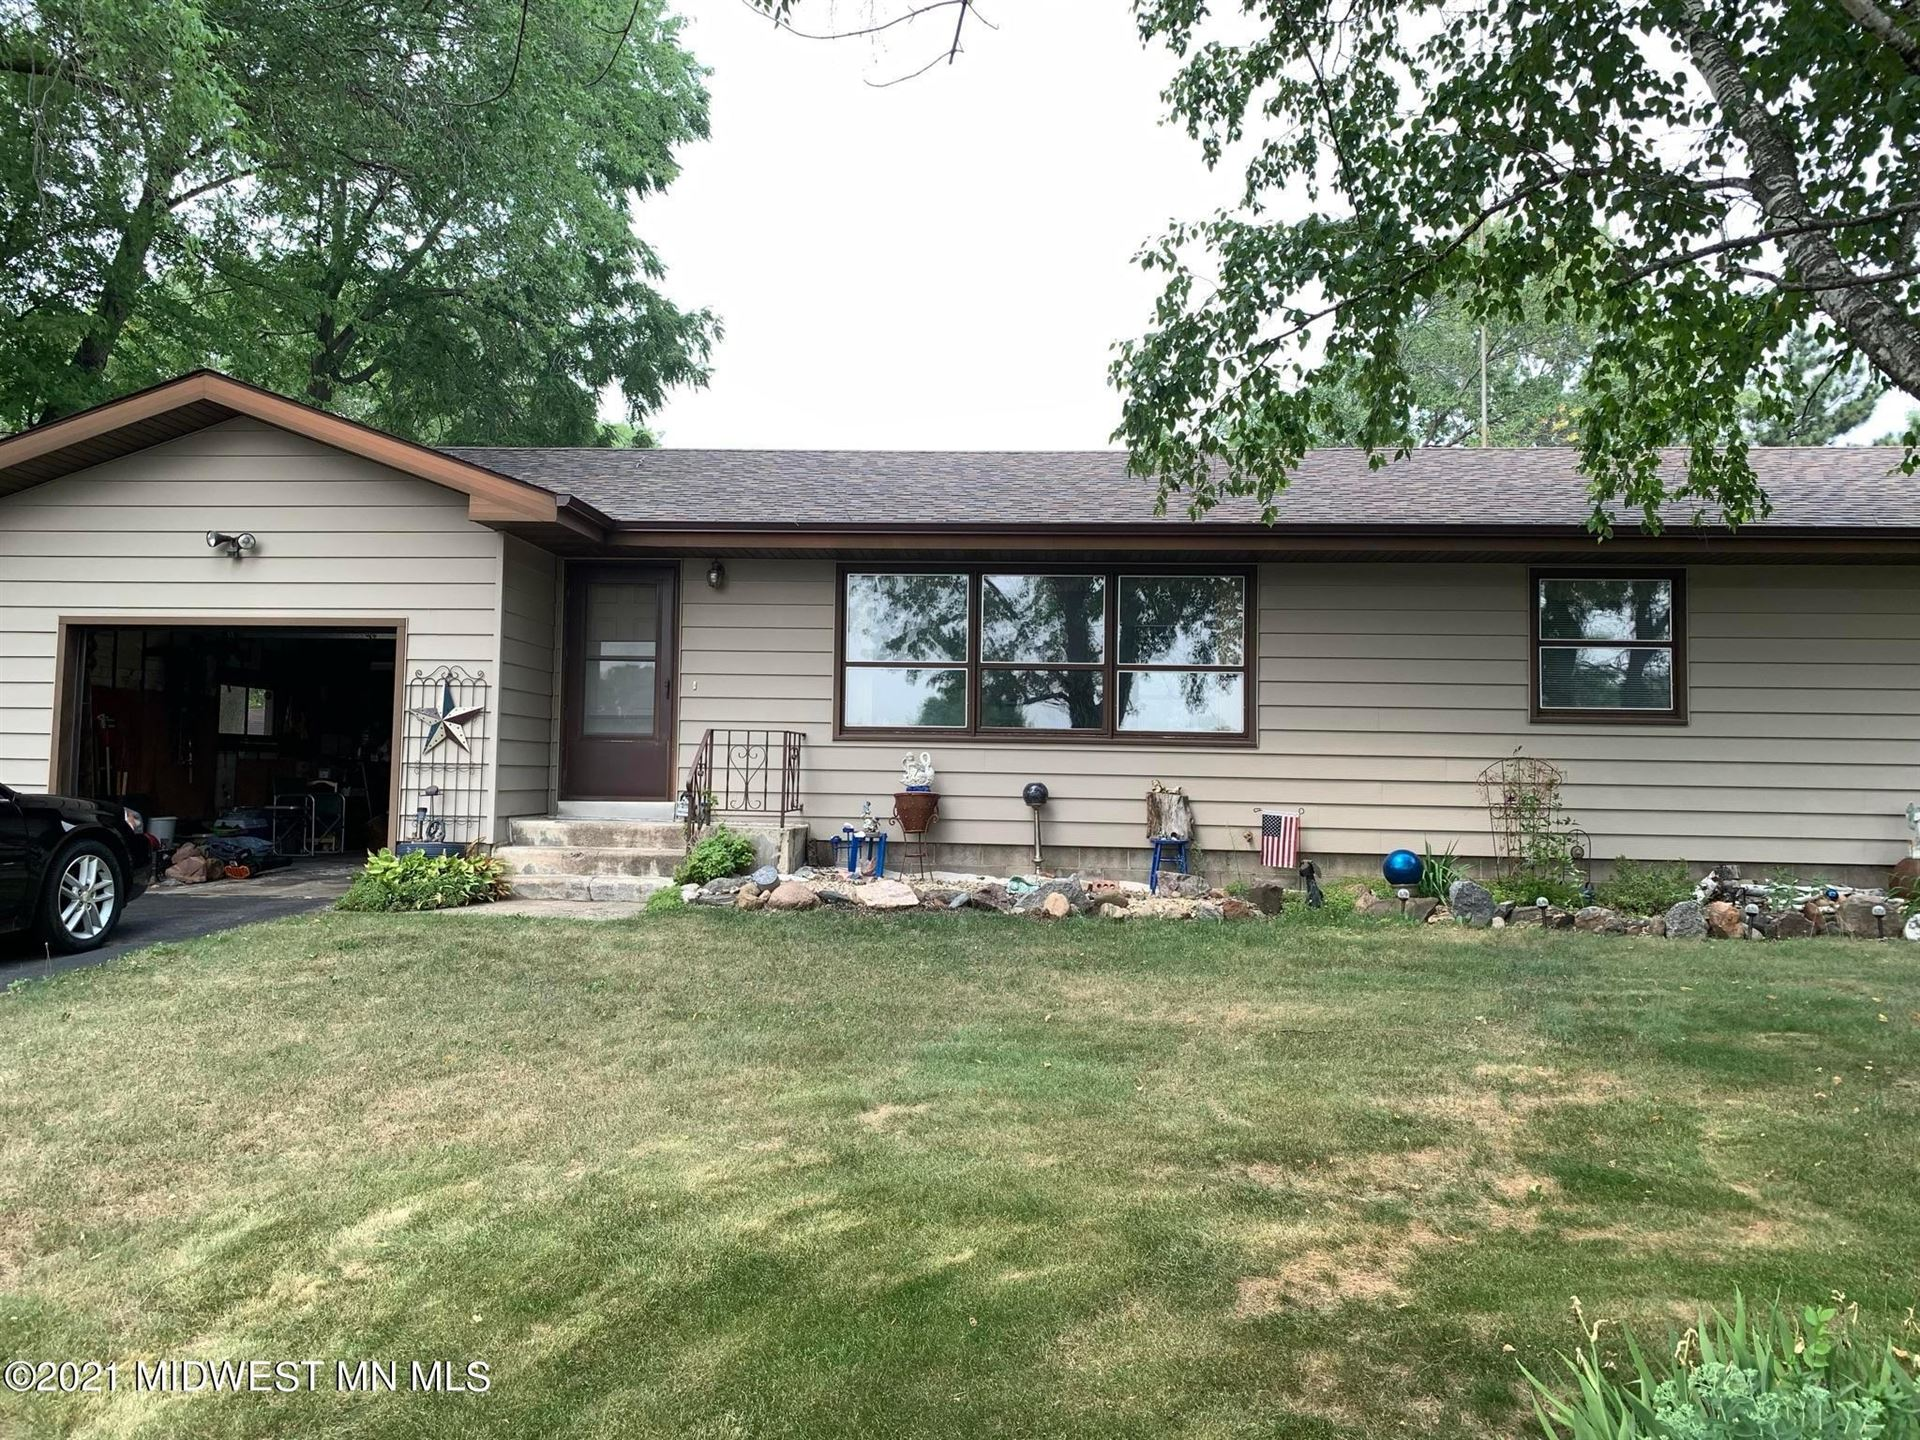 6012 Cty Rd 5, Rice, MN 56367 - #: 6065211